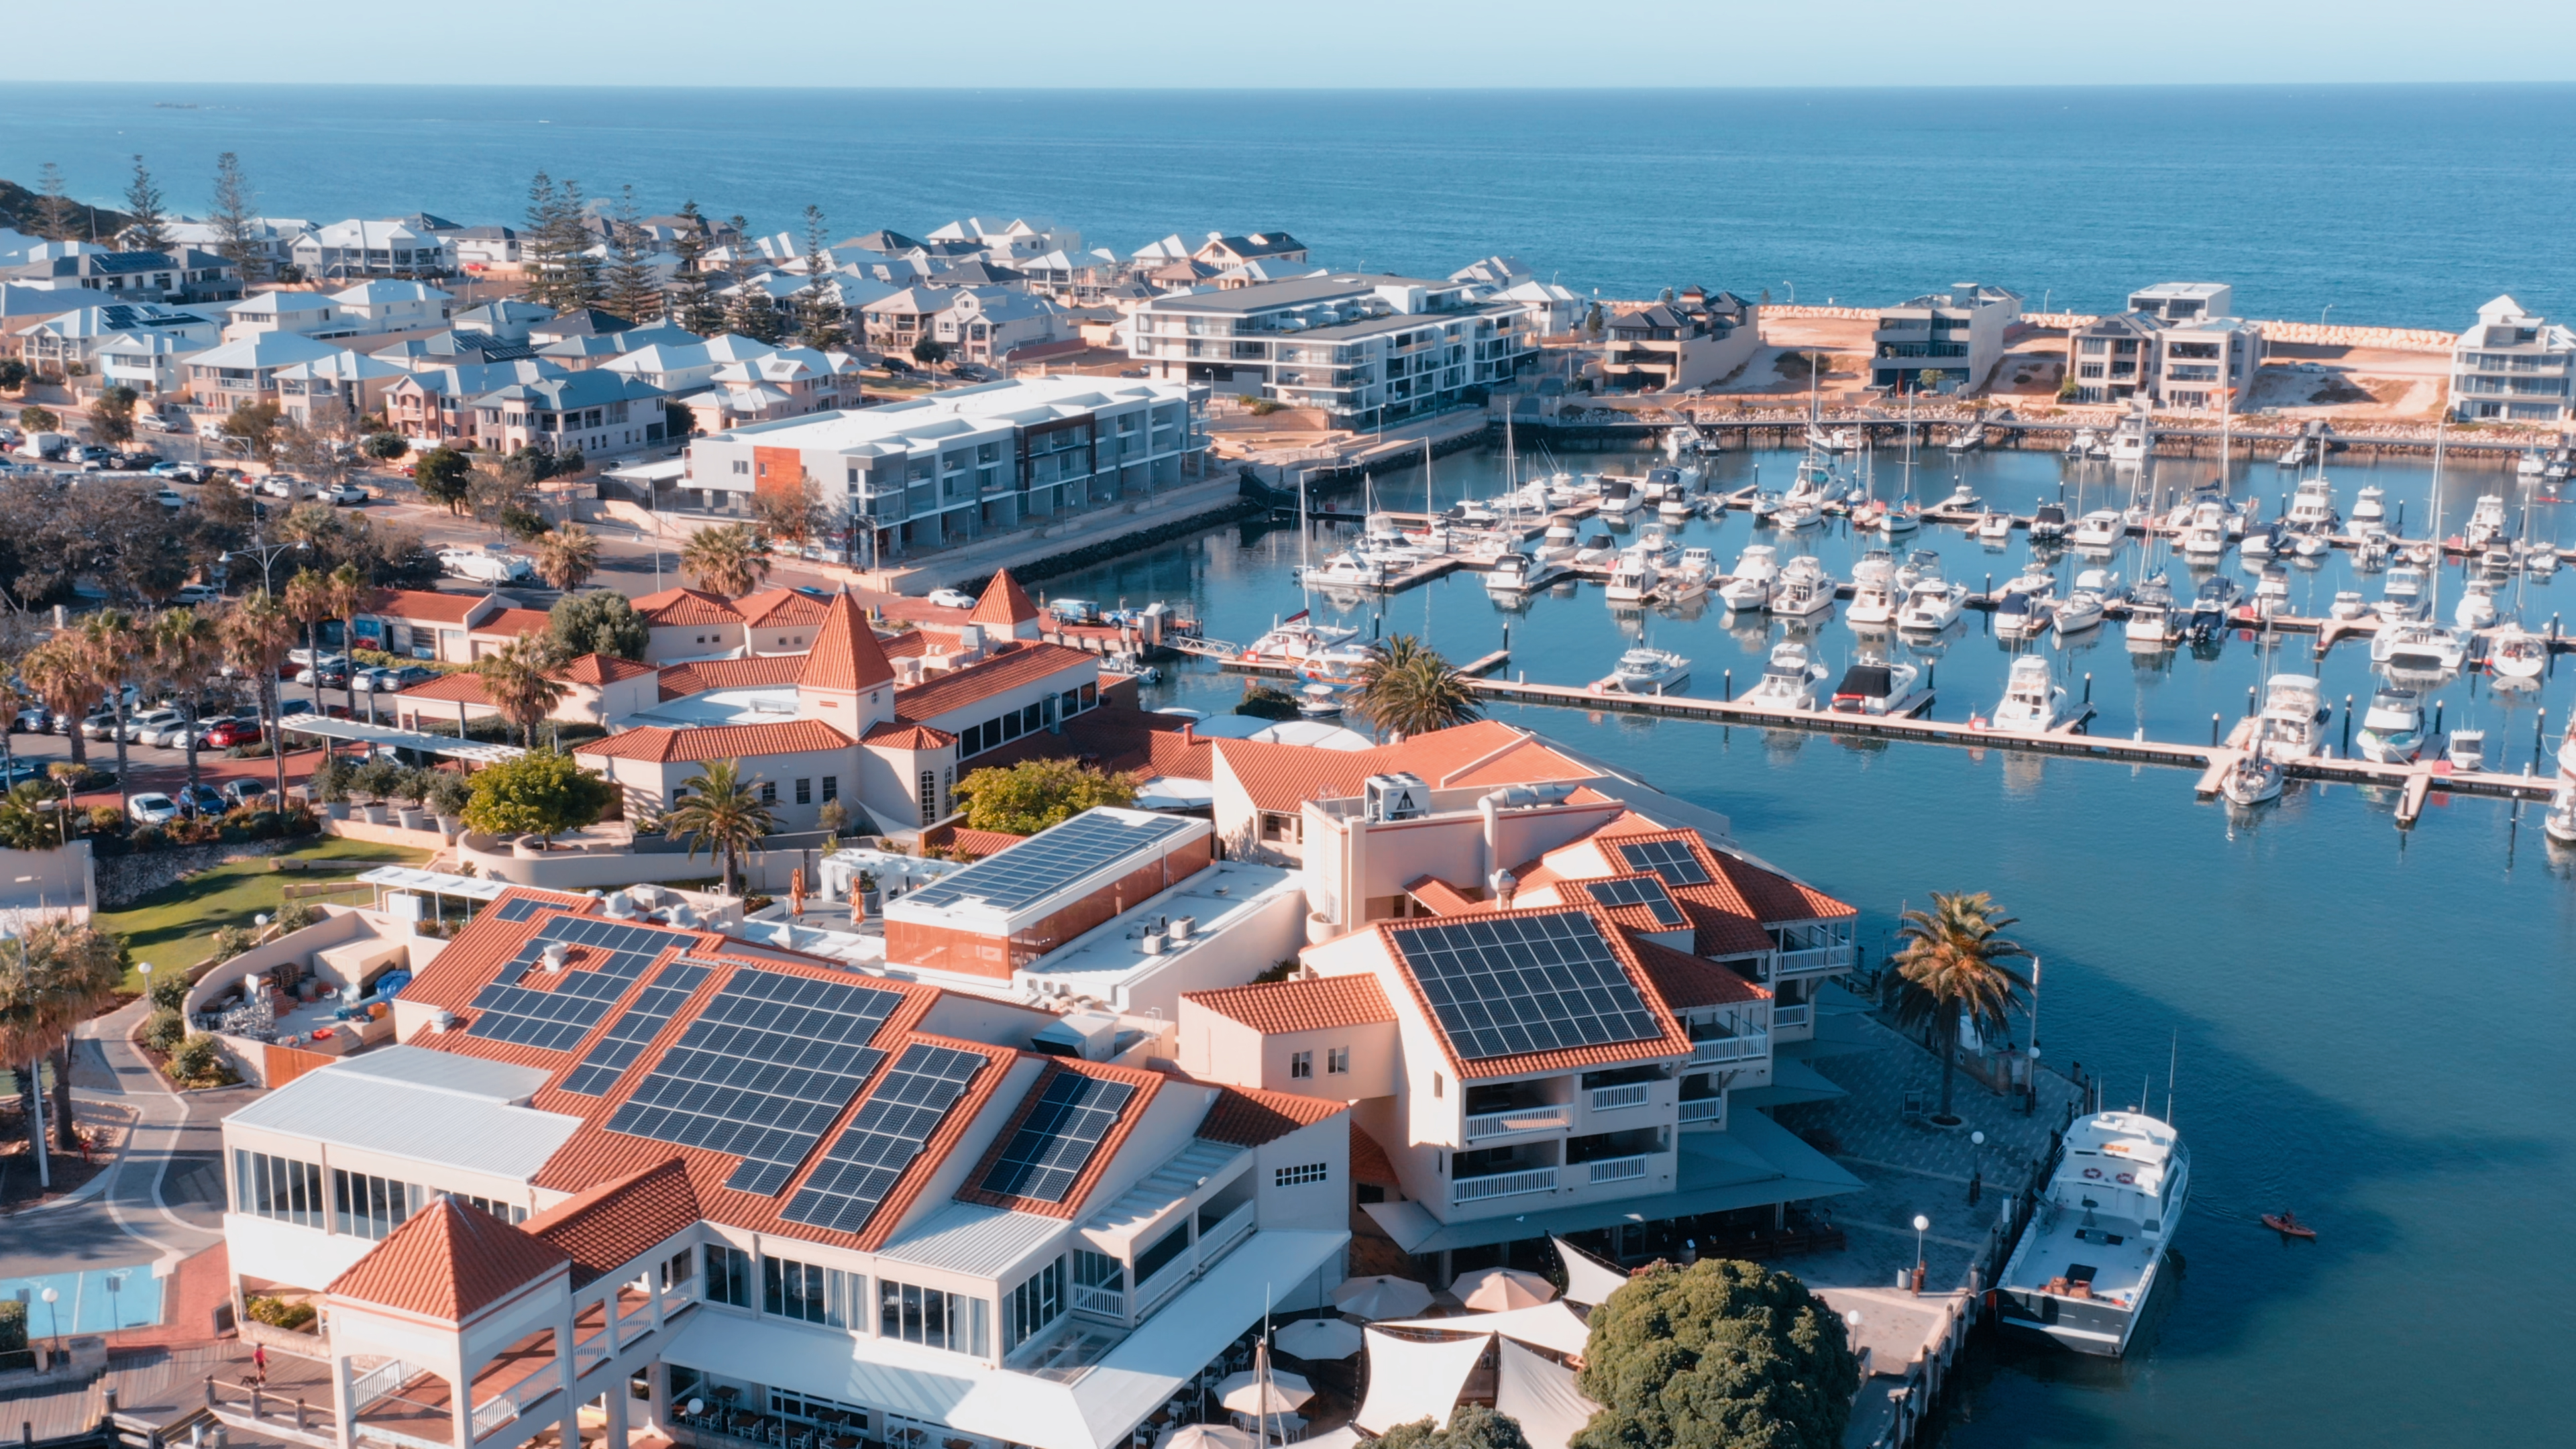 Mindarie Marina Drone Image Perth Western Australia Commercial Property Drone Videos